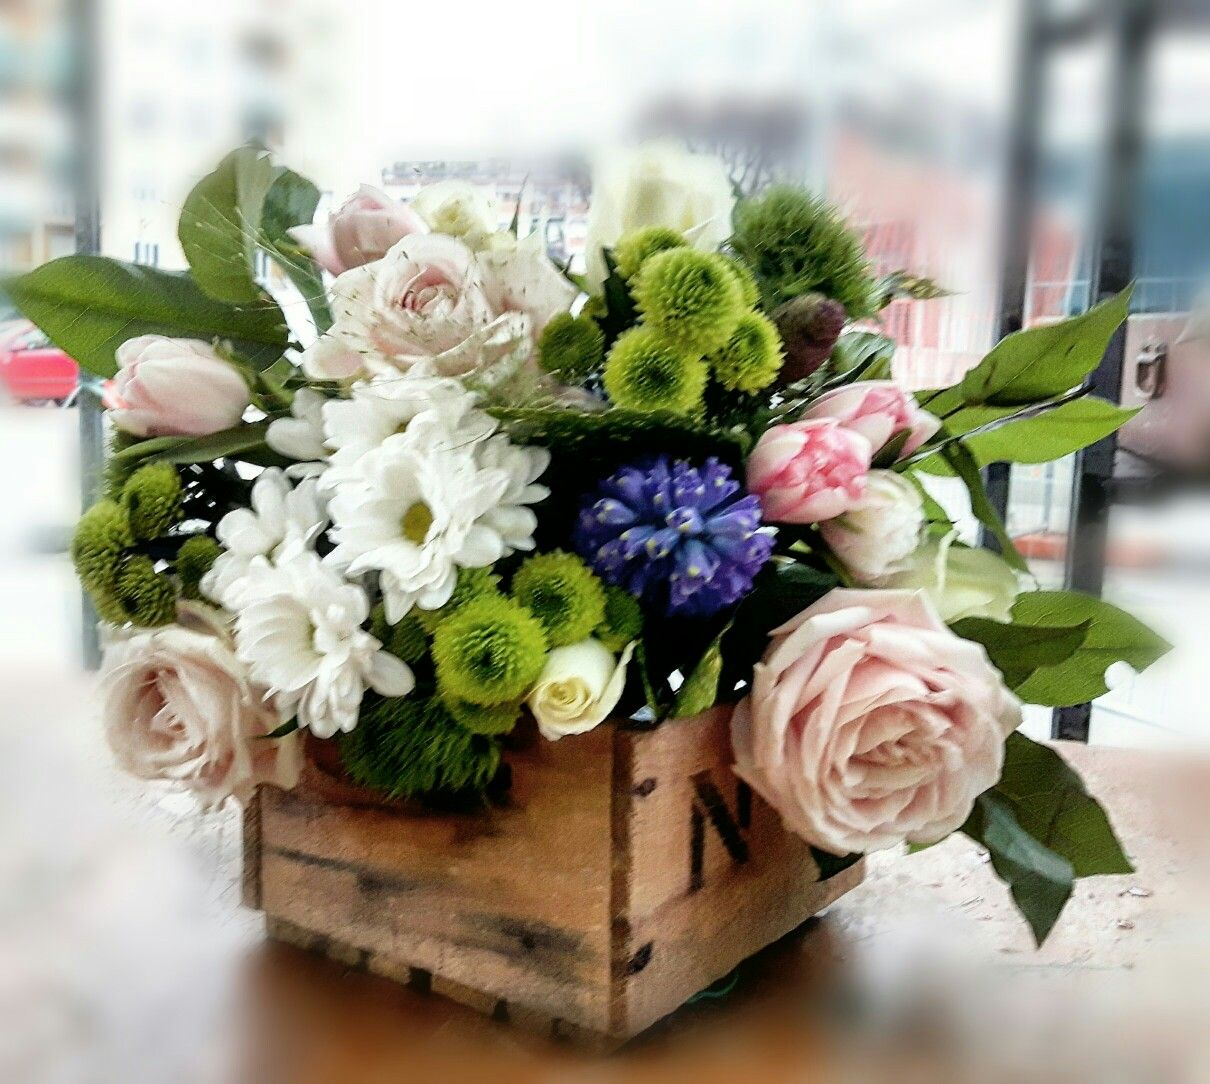 This is such a beautiful arrangement! I want to send this to everyone I love